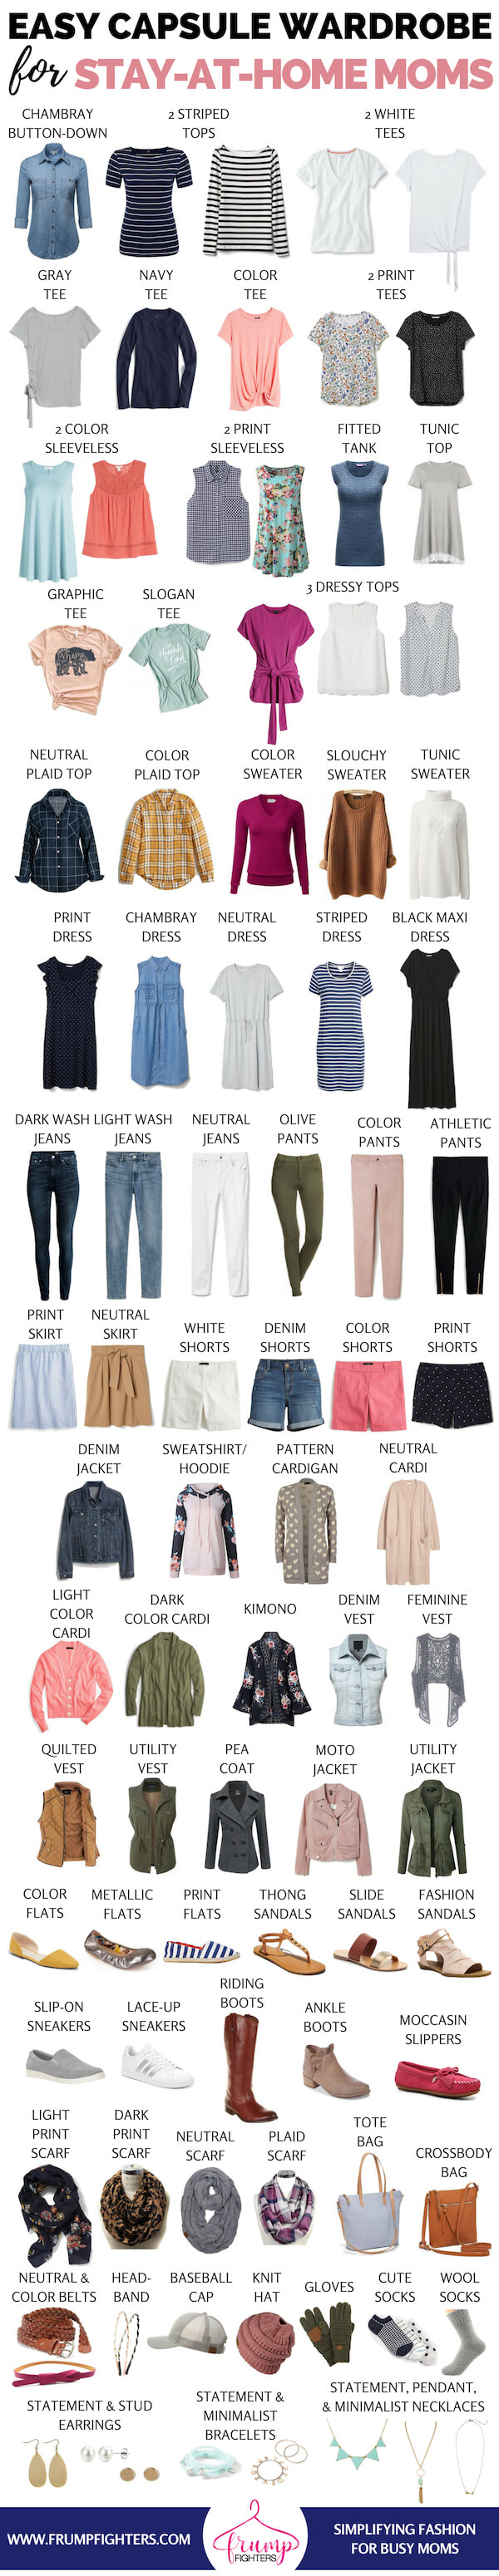 The Ultimate Stay at Home Mom Capsule Wardrobe Plan (free printable checklist) + Steps to Create Your First Capsule Wardrobe. Inspiration for cute mom clothes and outfits!